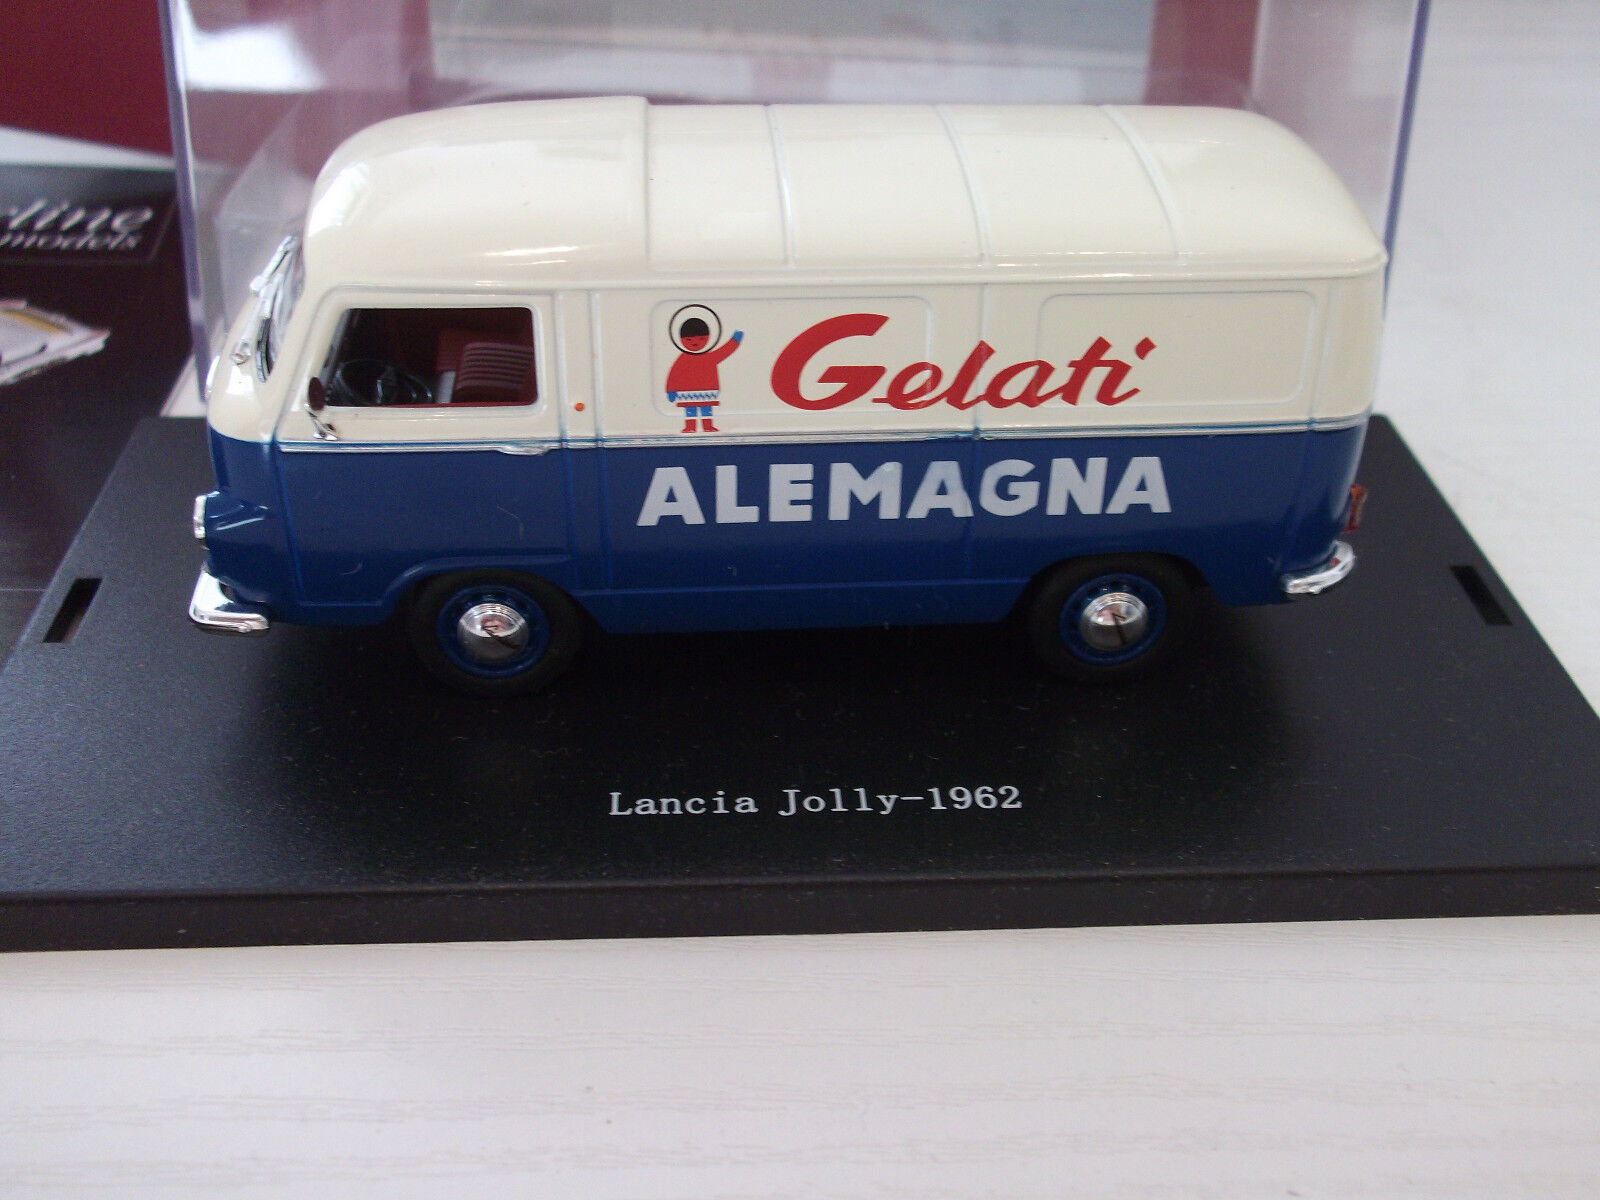 Starline Models 157621 Lancia Jolly 'Gelati Alemagna' 1962  1:43 in Vitrine OVP